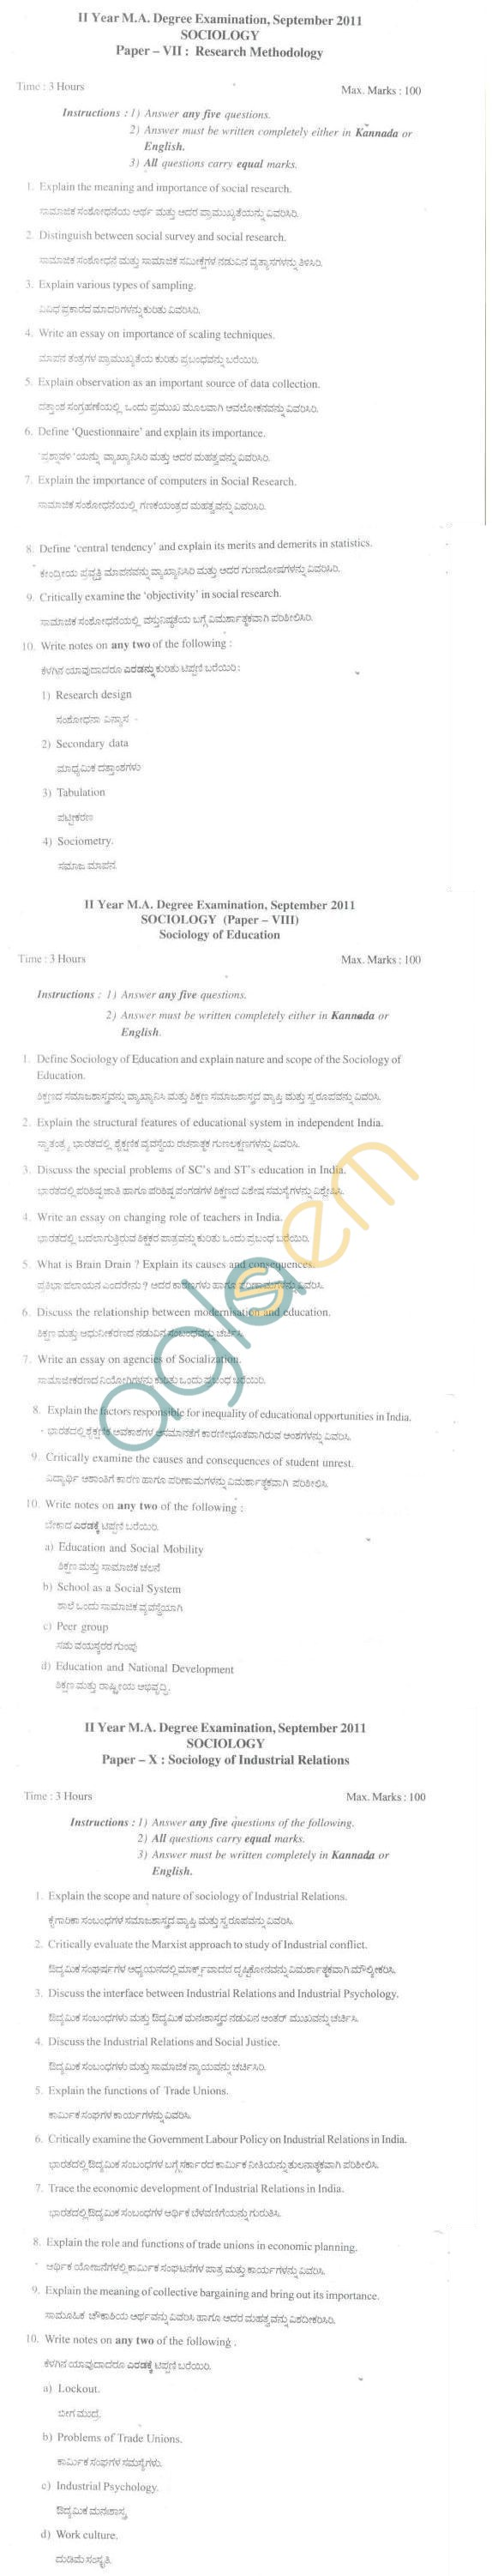 Bangalore University Question Paper September 2011 II Year M.A. Degree Examination - Sociology